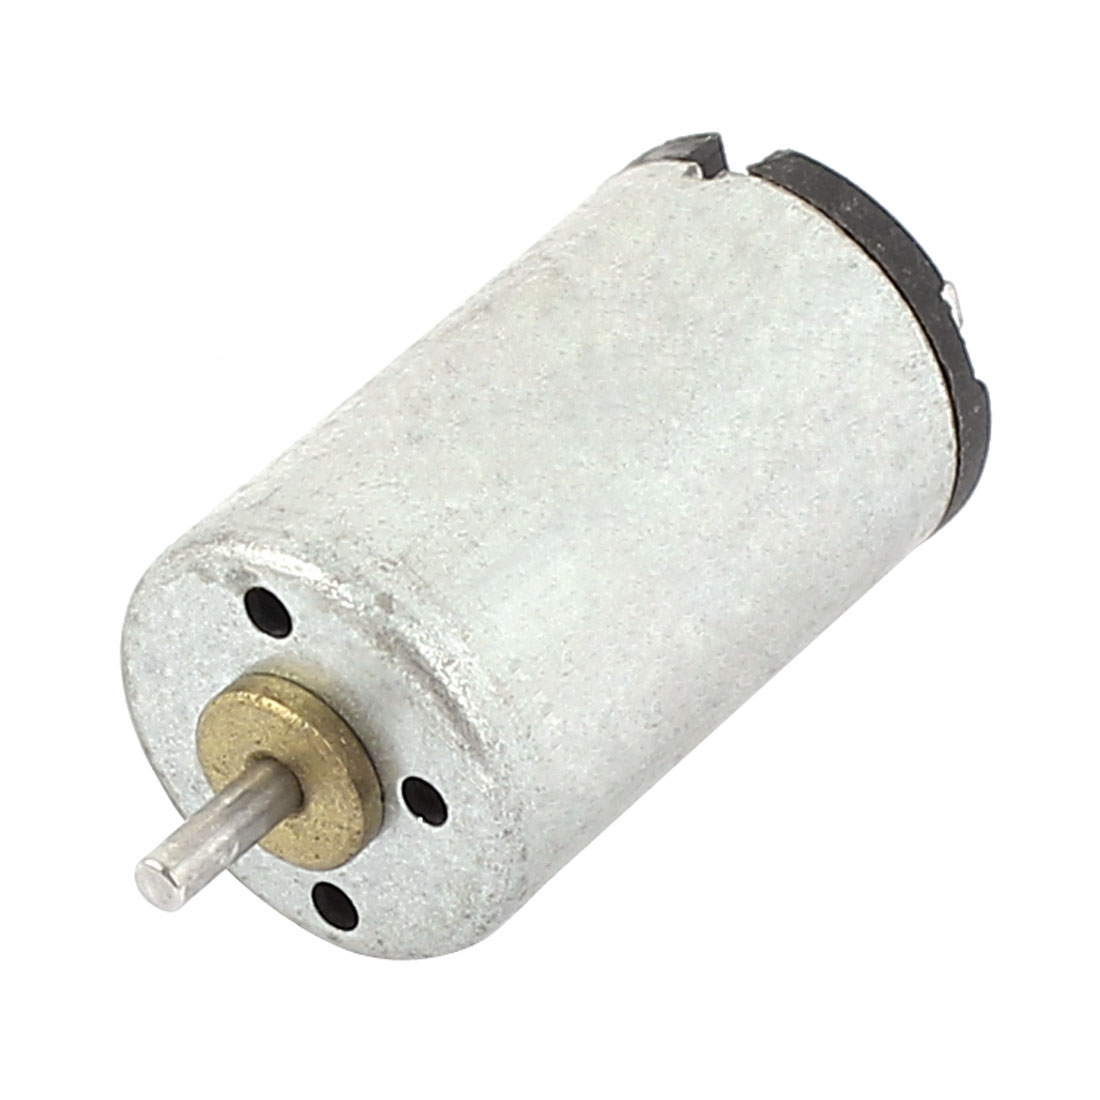 3V-12V 20000RPM 1.5mm Shaft Dia High Torque DC Motor for DIY Toys Project